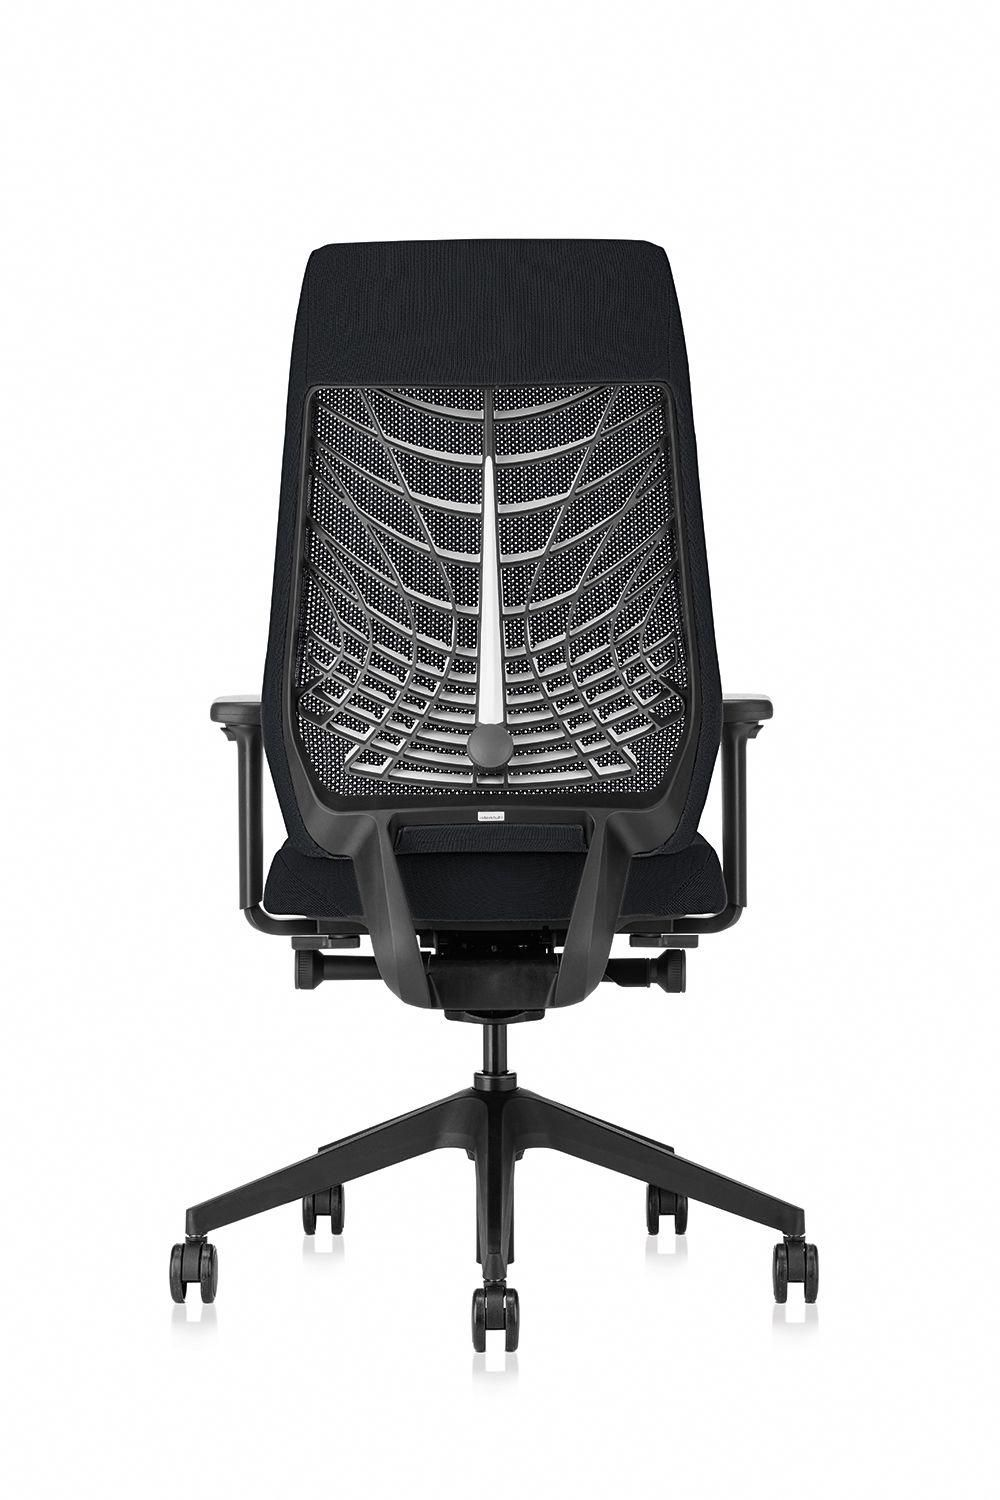 Workpro Commercial Mesh Back Executive Chair Black Allsteel Mimeo Chair Shown In Loft Mesh With 4d Arms